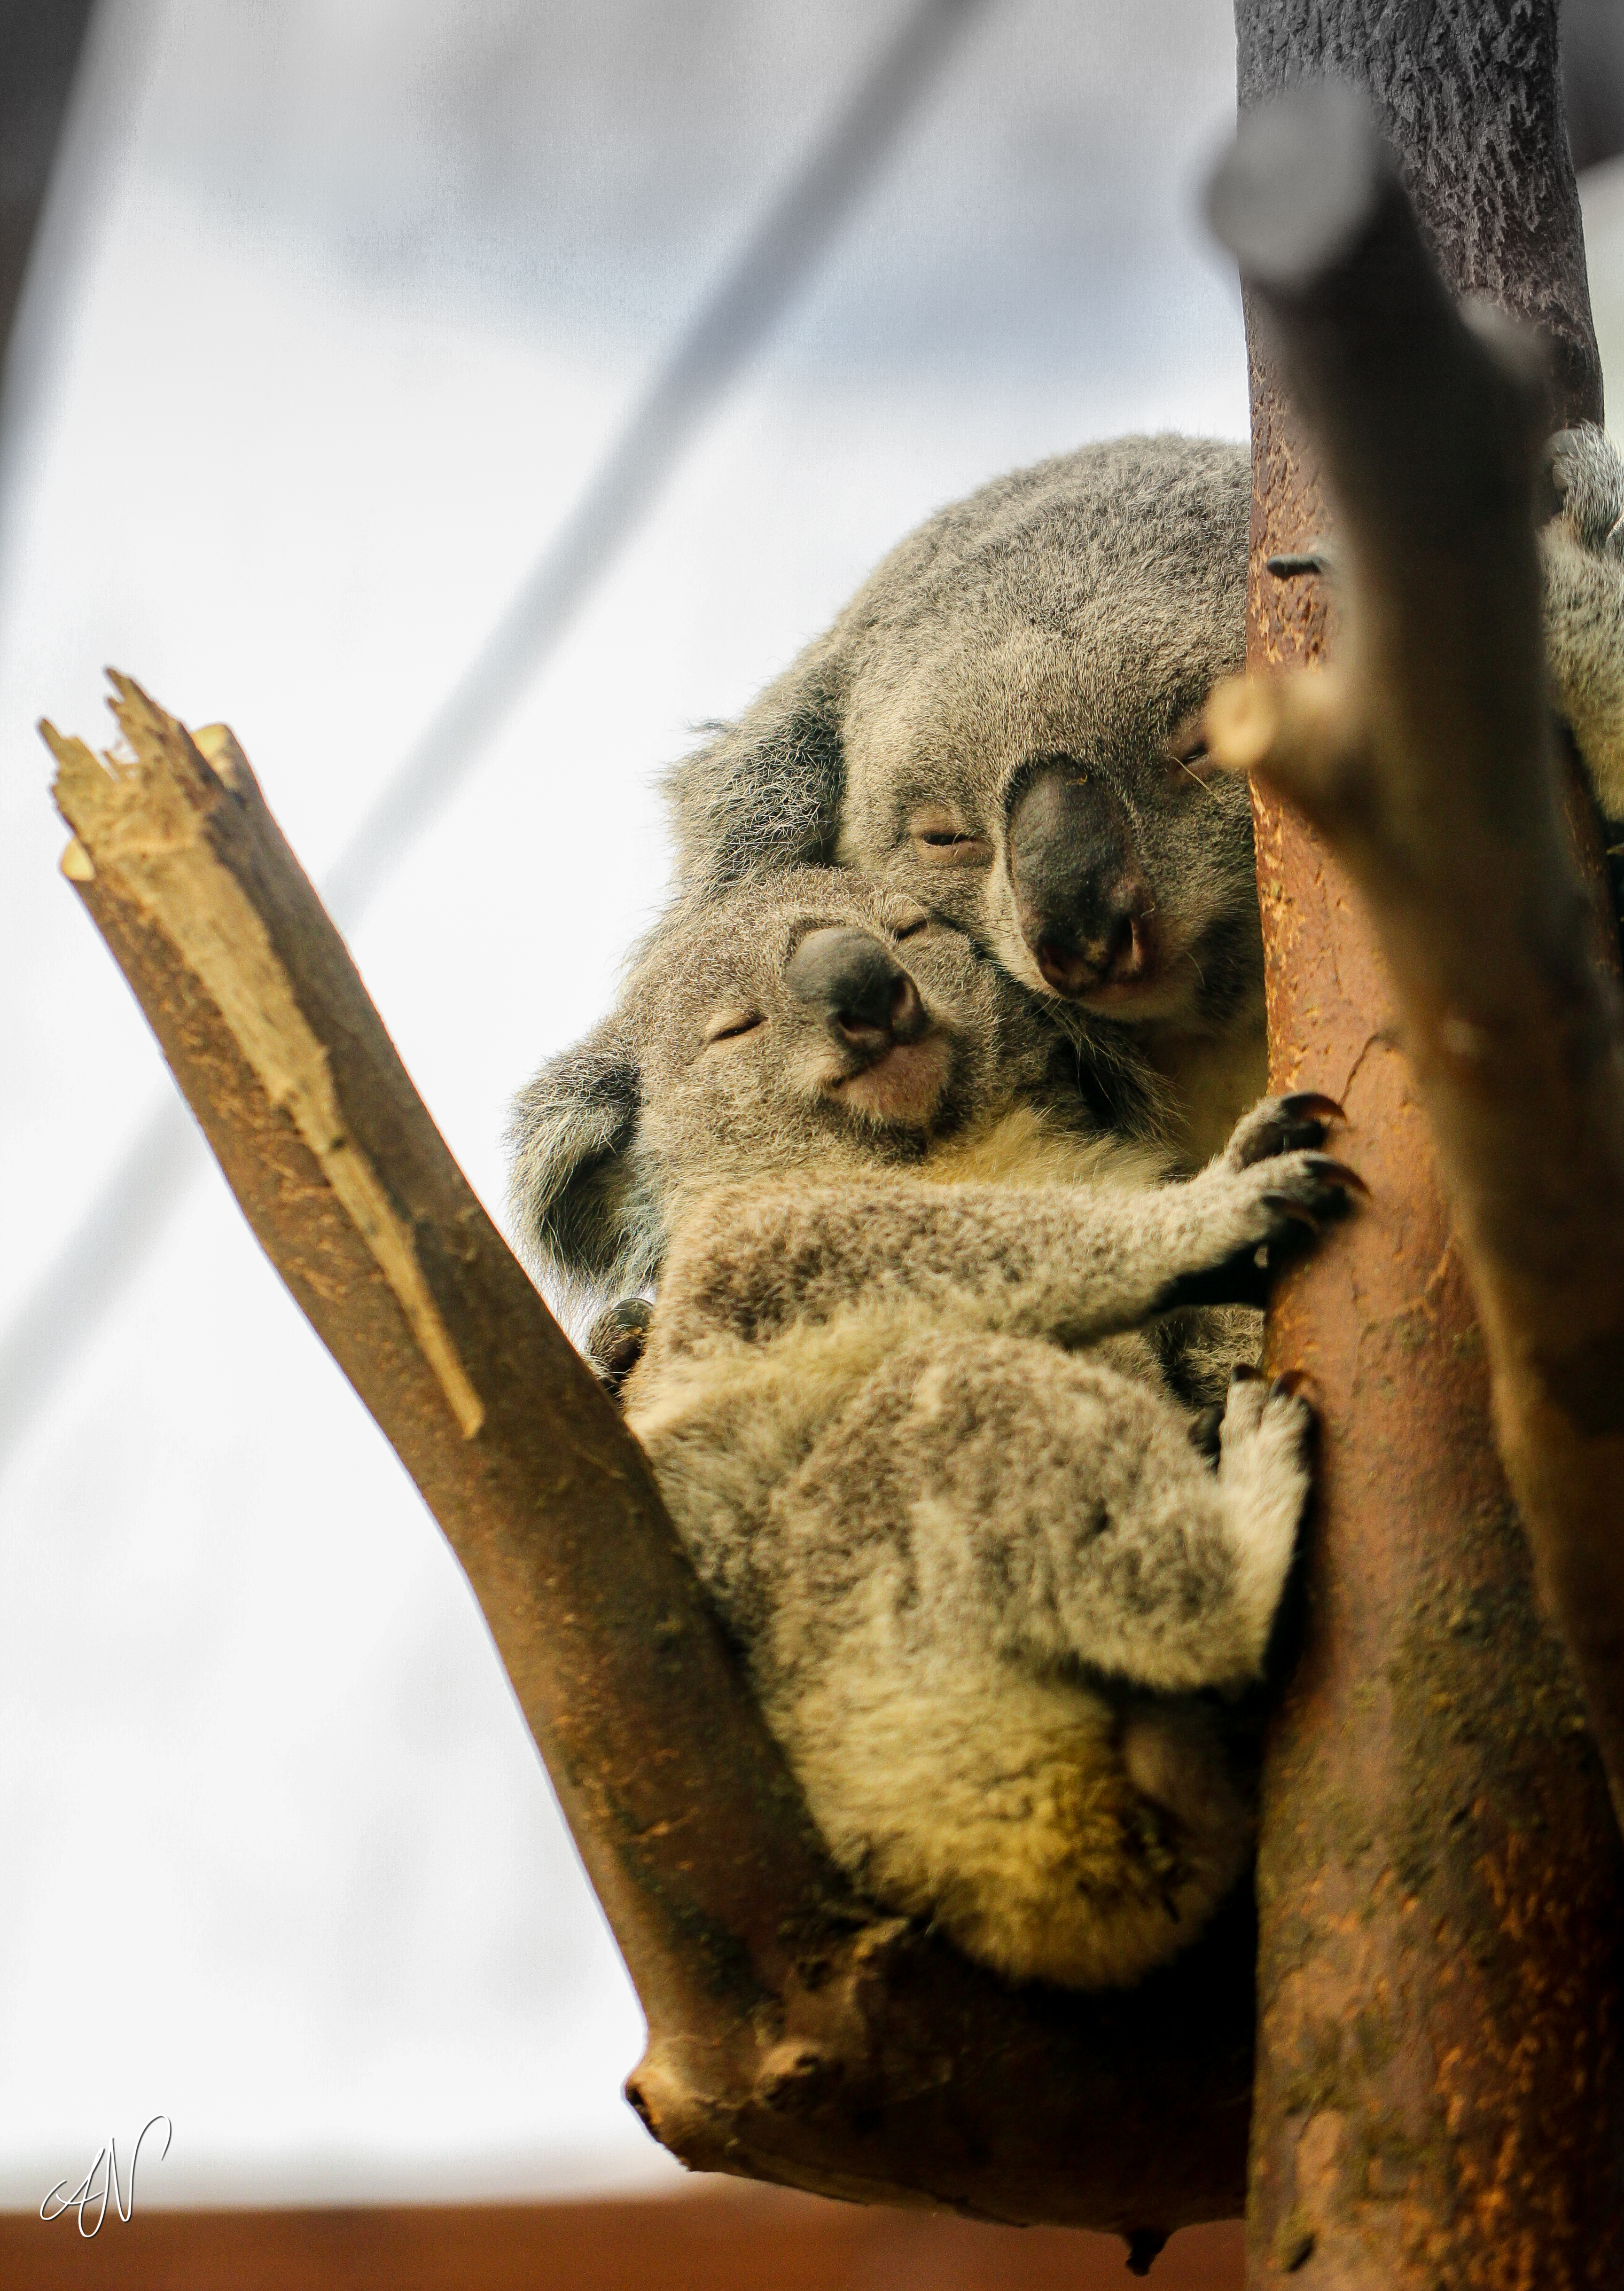 145682 download wallpaper Animals, Koalas, Wood, Tree, Wildlife, Sleep, Dream screensavers and pictures for free